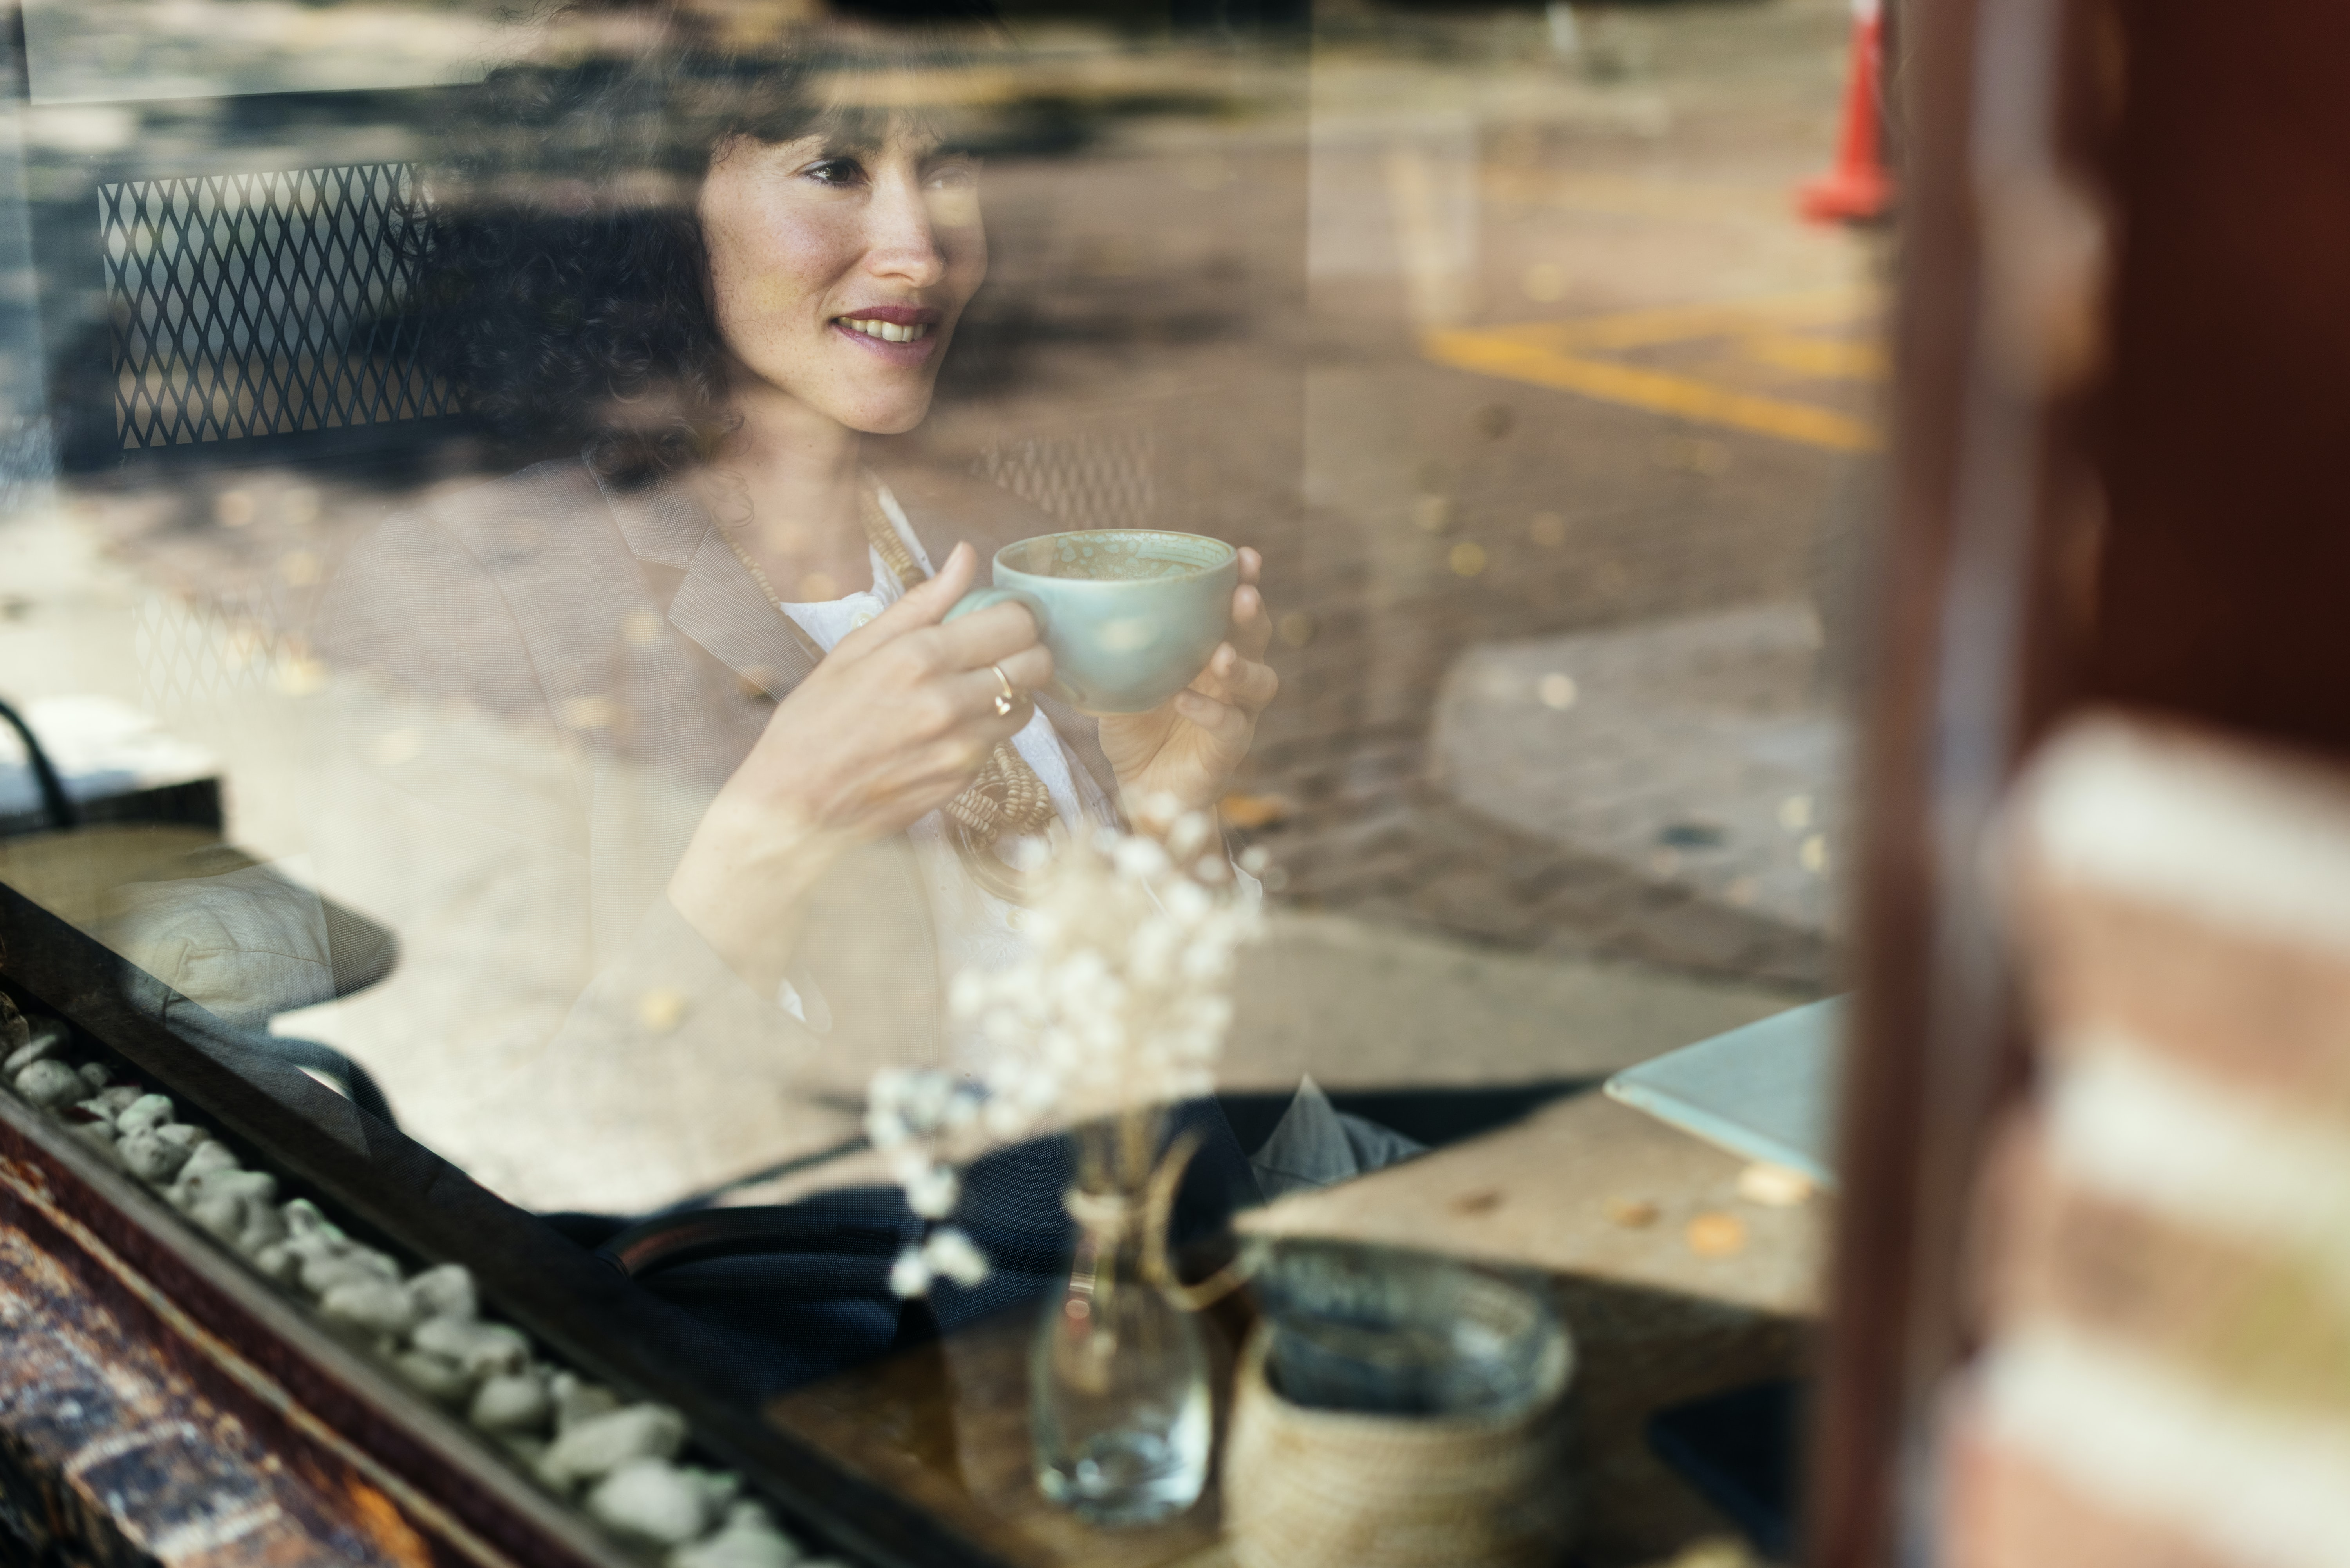 woman sitting inside train holding teacup